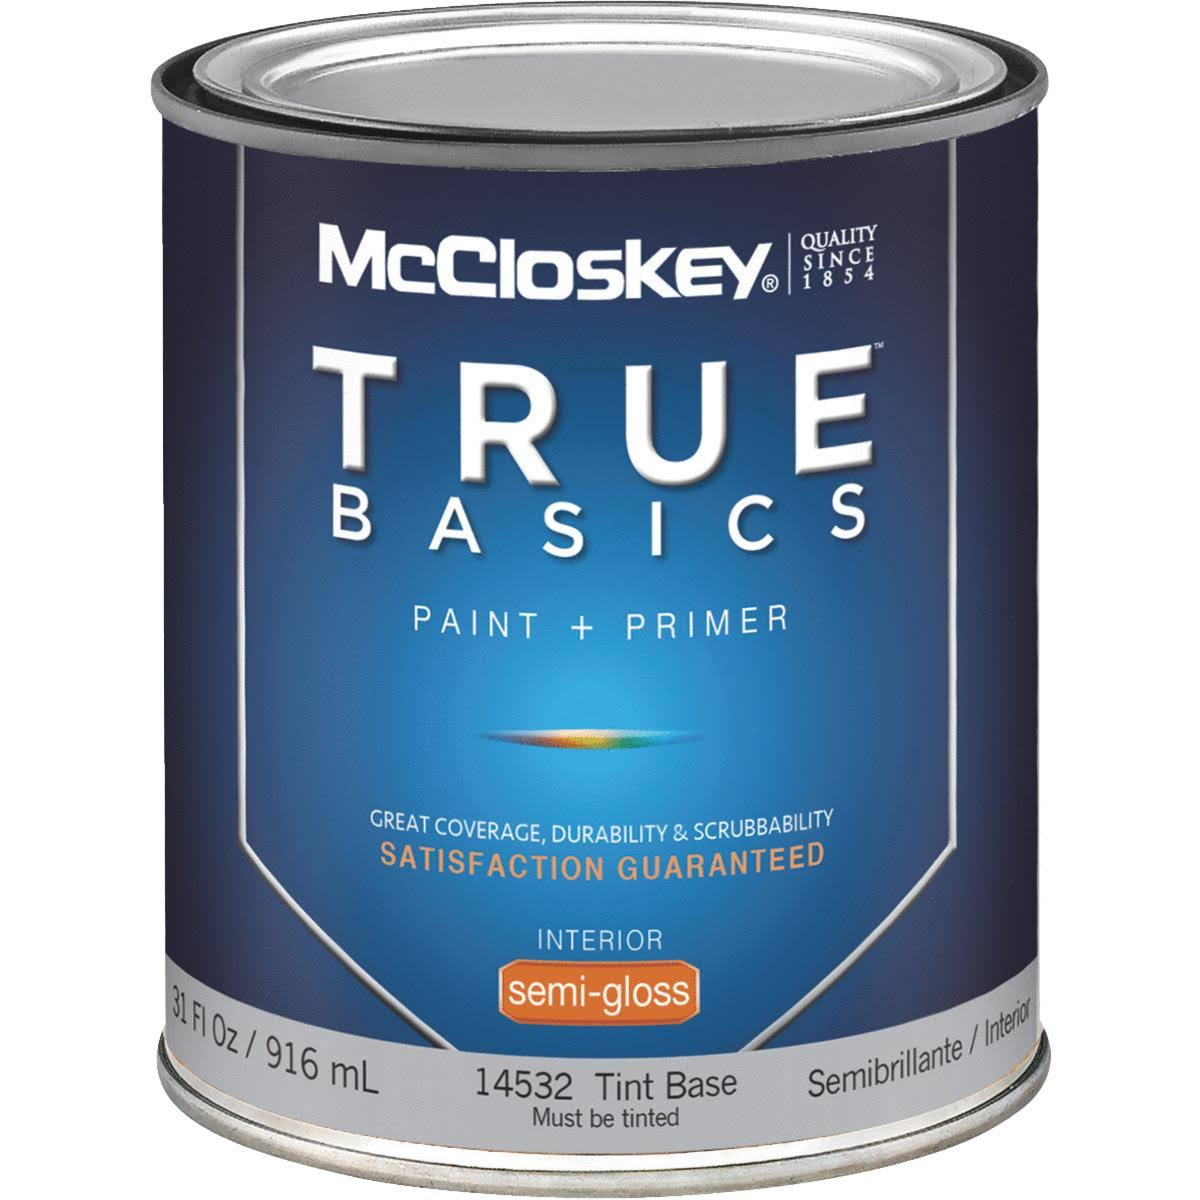 McCloskey 14532 True Basics Interior Latex Semi-Gloss Paint, Tint Base